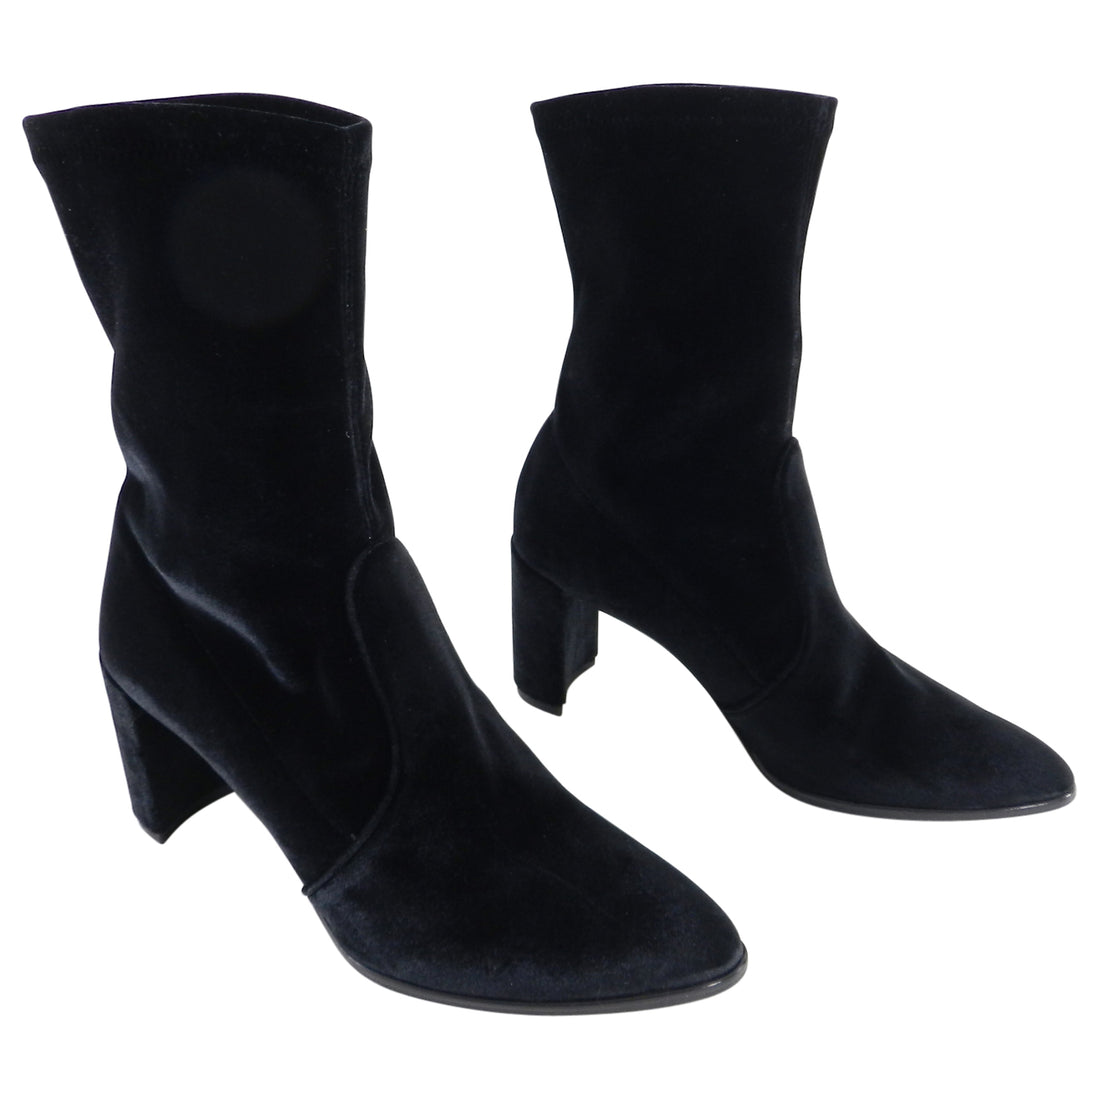 Stuart Weitzman Black Stretch Velvet Prancer Ankle Boots - 7.5